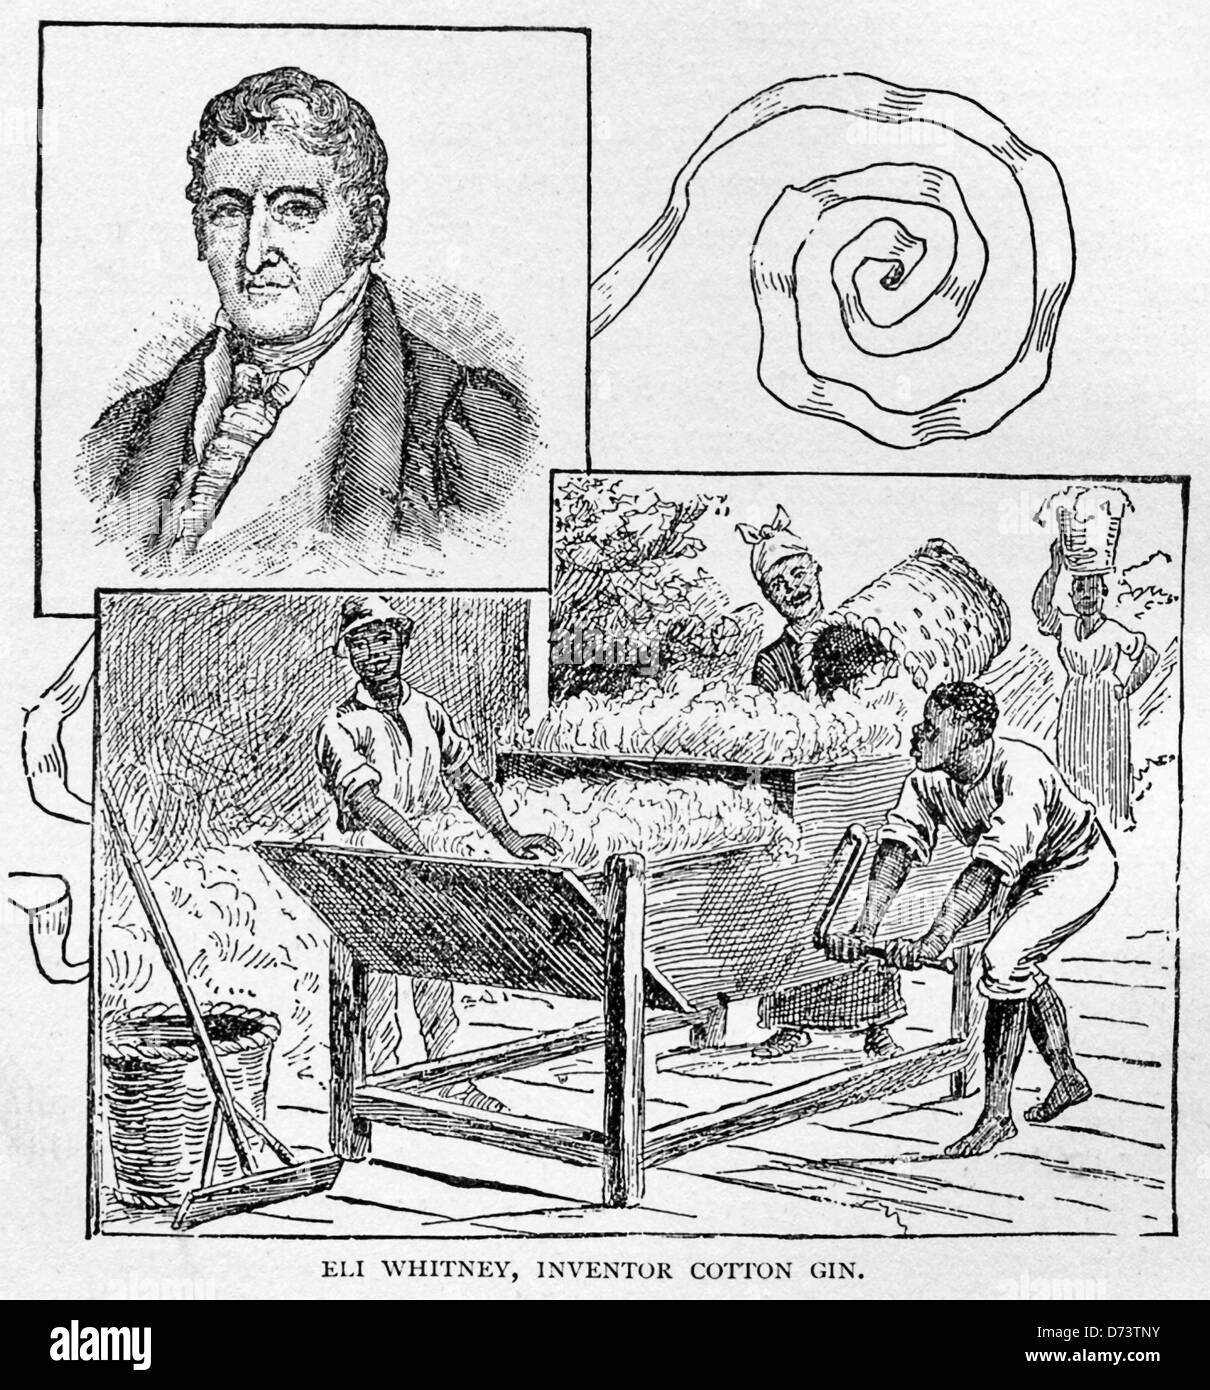 a history of eli whitneys invention of cotton gin Patent drawing for eli whitney's cotton gin the cotton gin in retrospect has a dark side to its history before its invention, cotton seeds had to be.